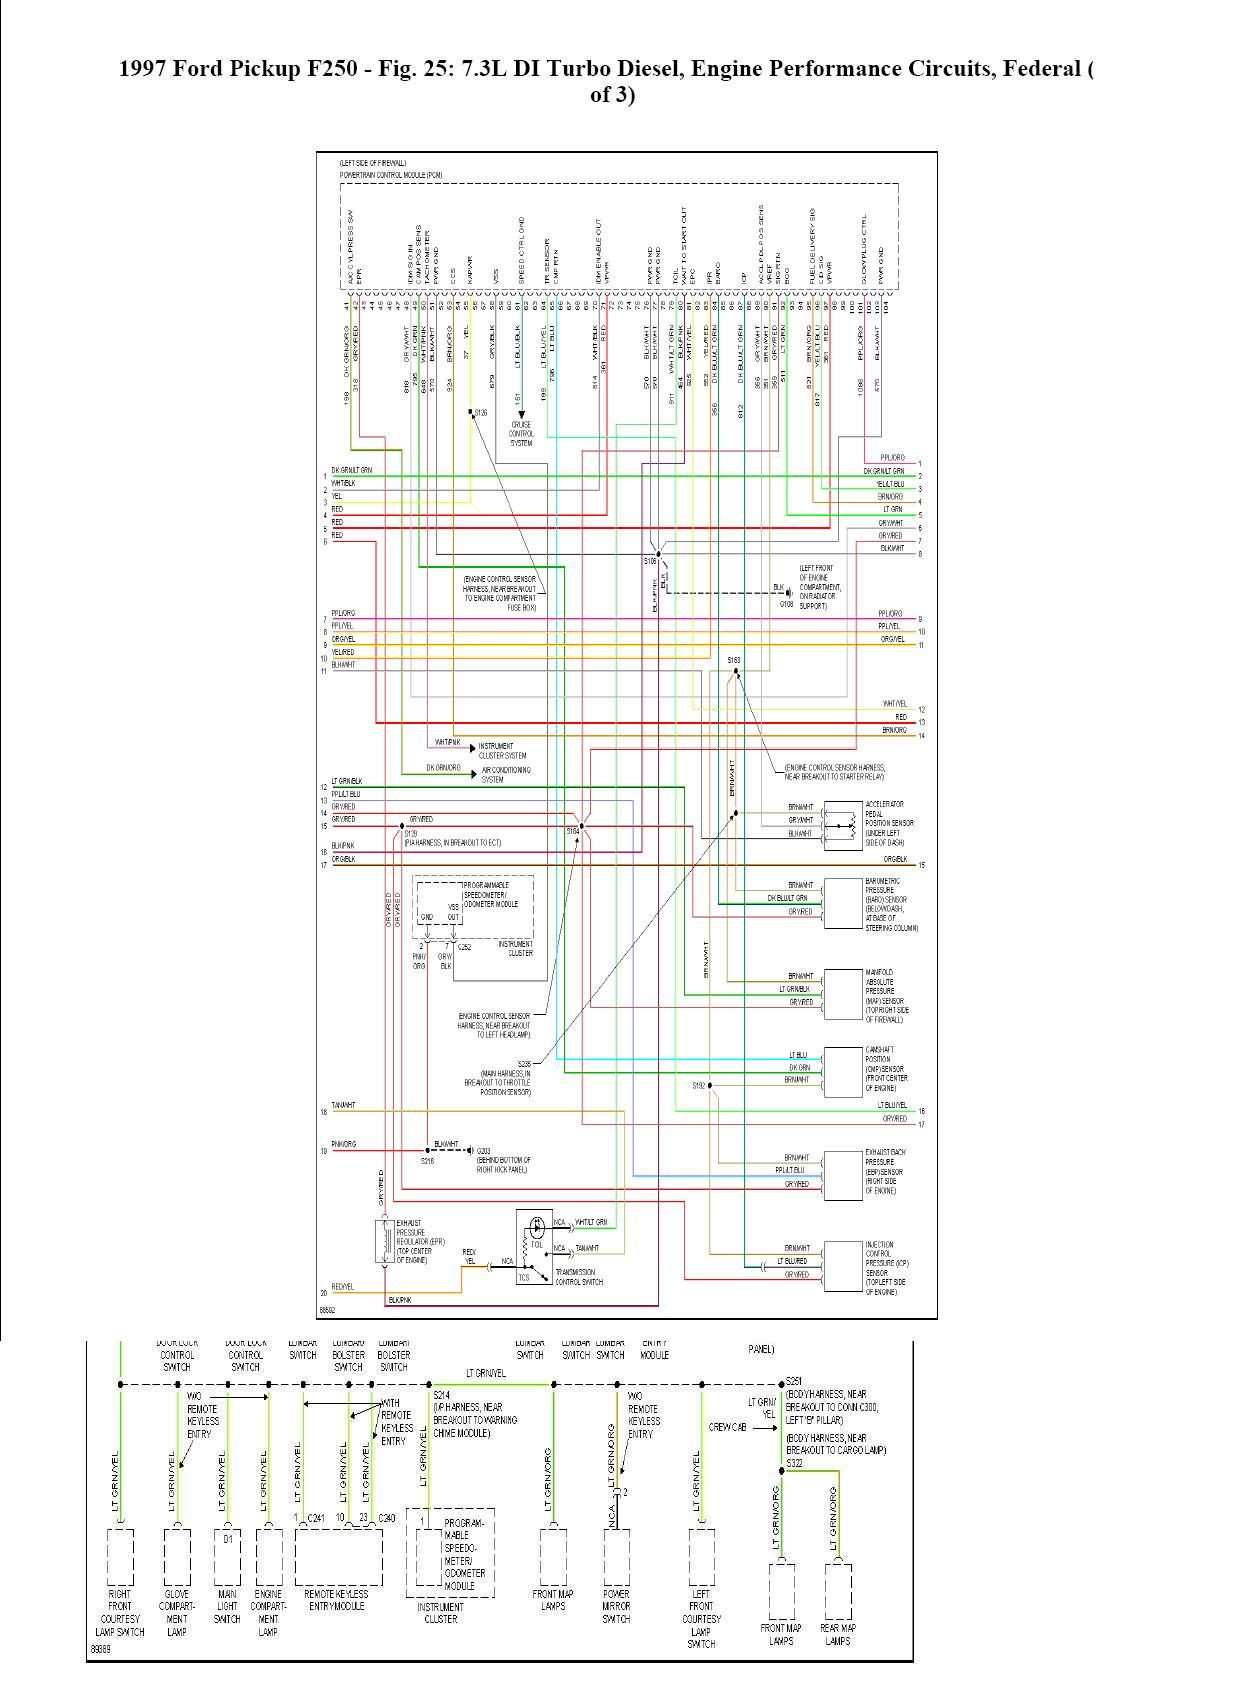 complete wiring schematic powerstroke 1997 ford f350 ford wiring diagram for 1997 ford f150 xl [ 1243 x 1690 Pixel ]